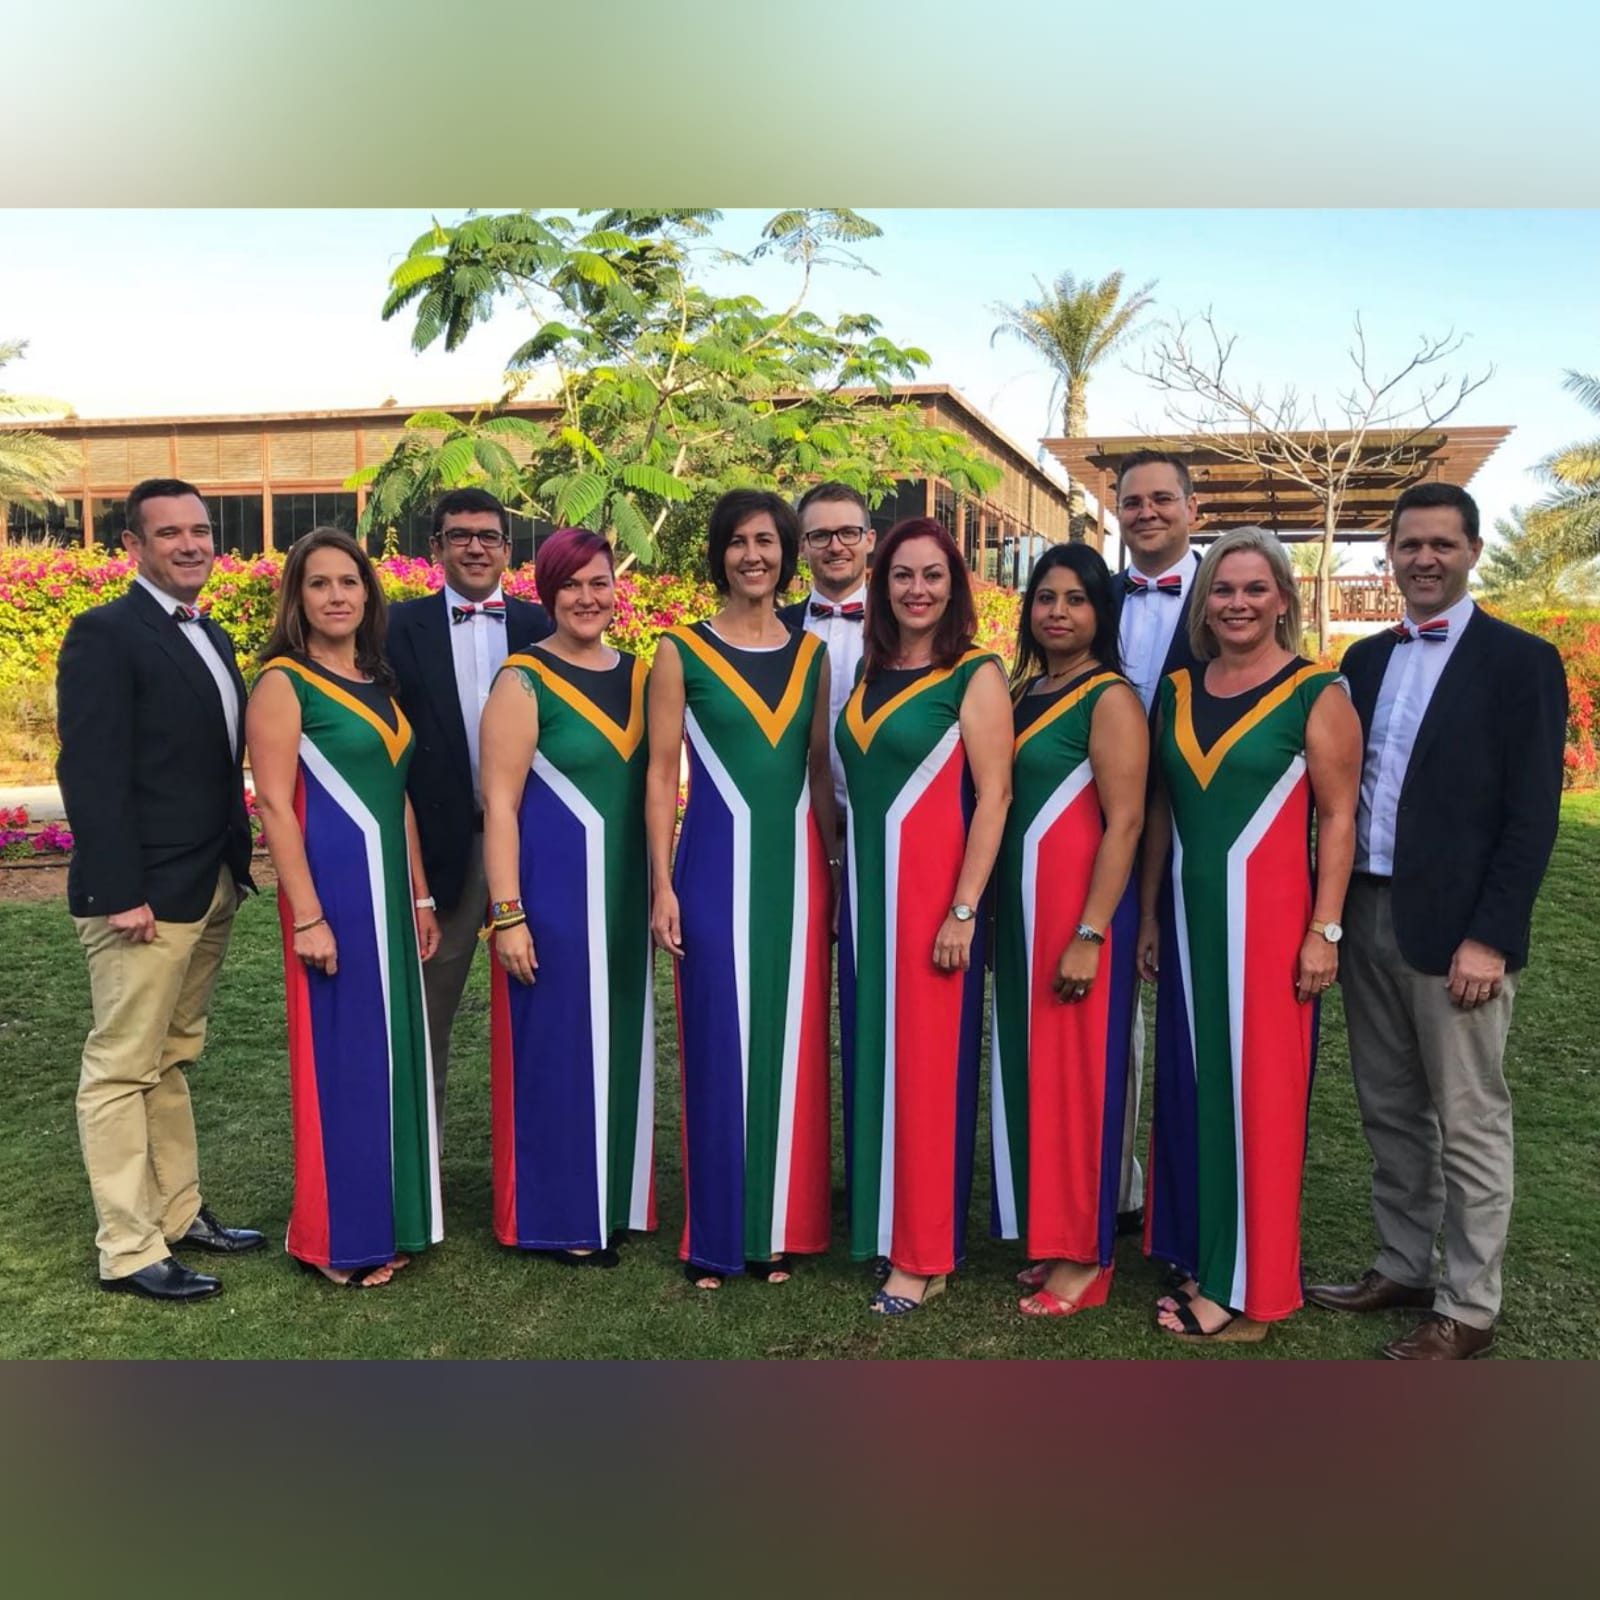 Long custom printed south african flag dress 1 long custom printed south african flag dress (flag in front and the back) with matching bow ties that you can request at an extra cost when you order your dress.